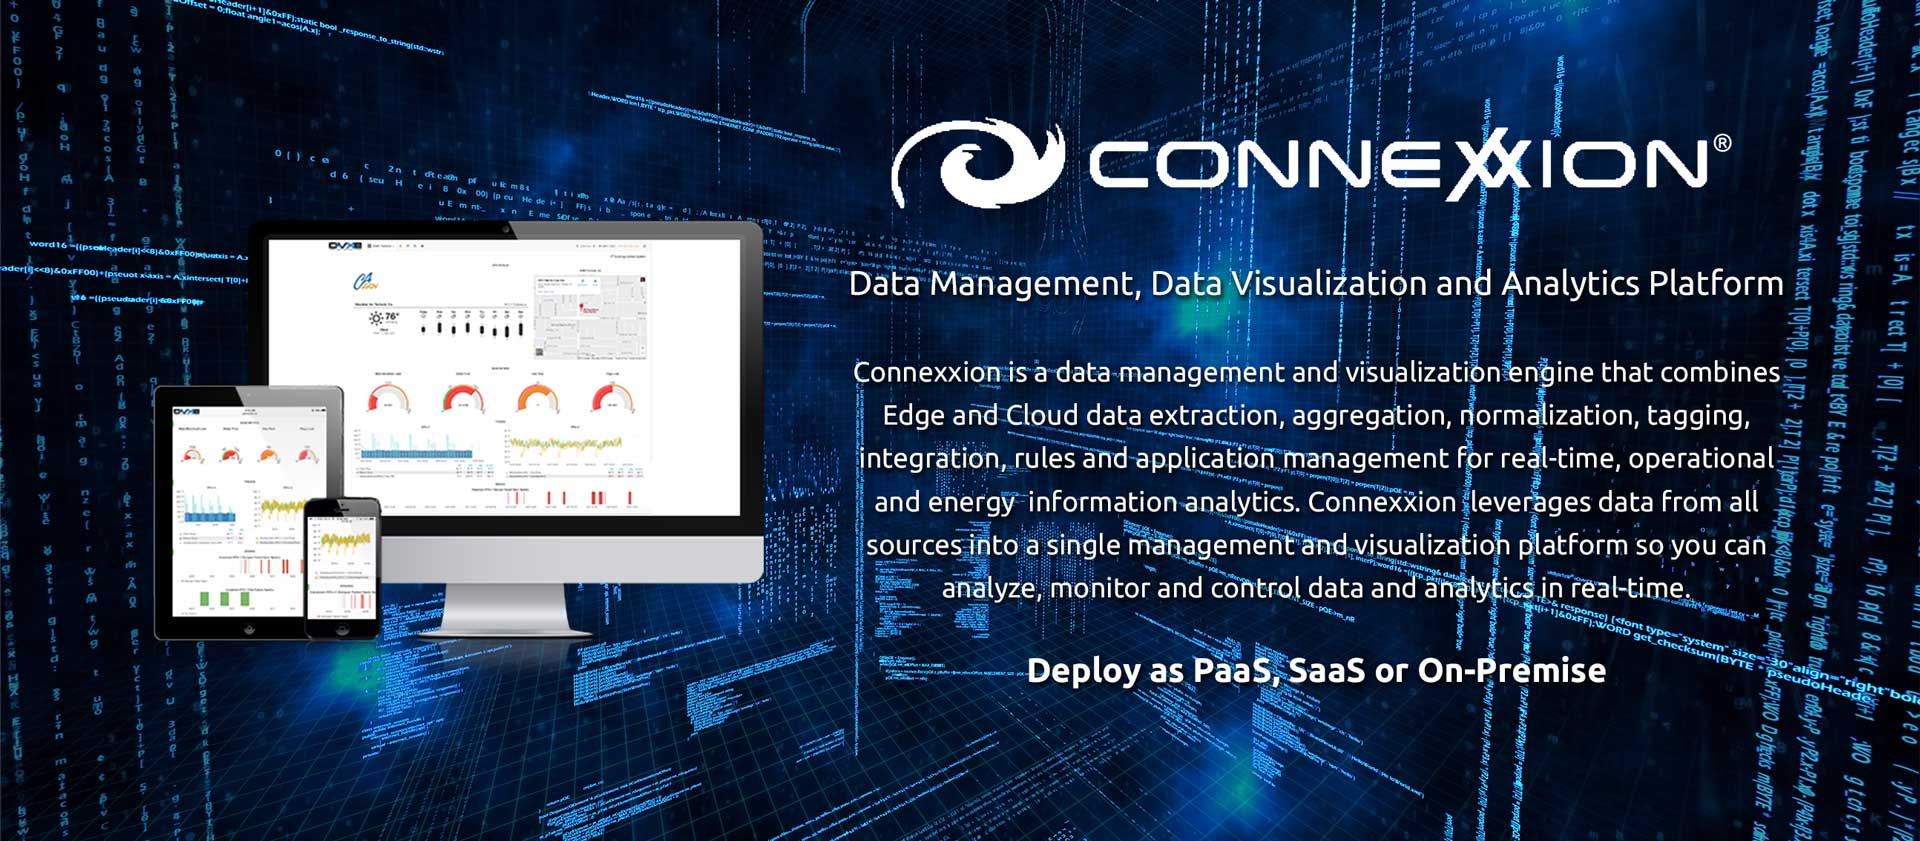 The Lynxspring Connexxion for Data Management, Data Visualization and Analytics